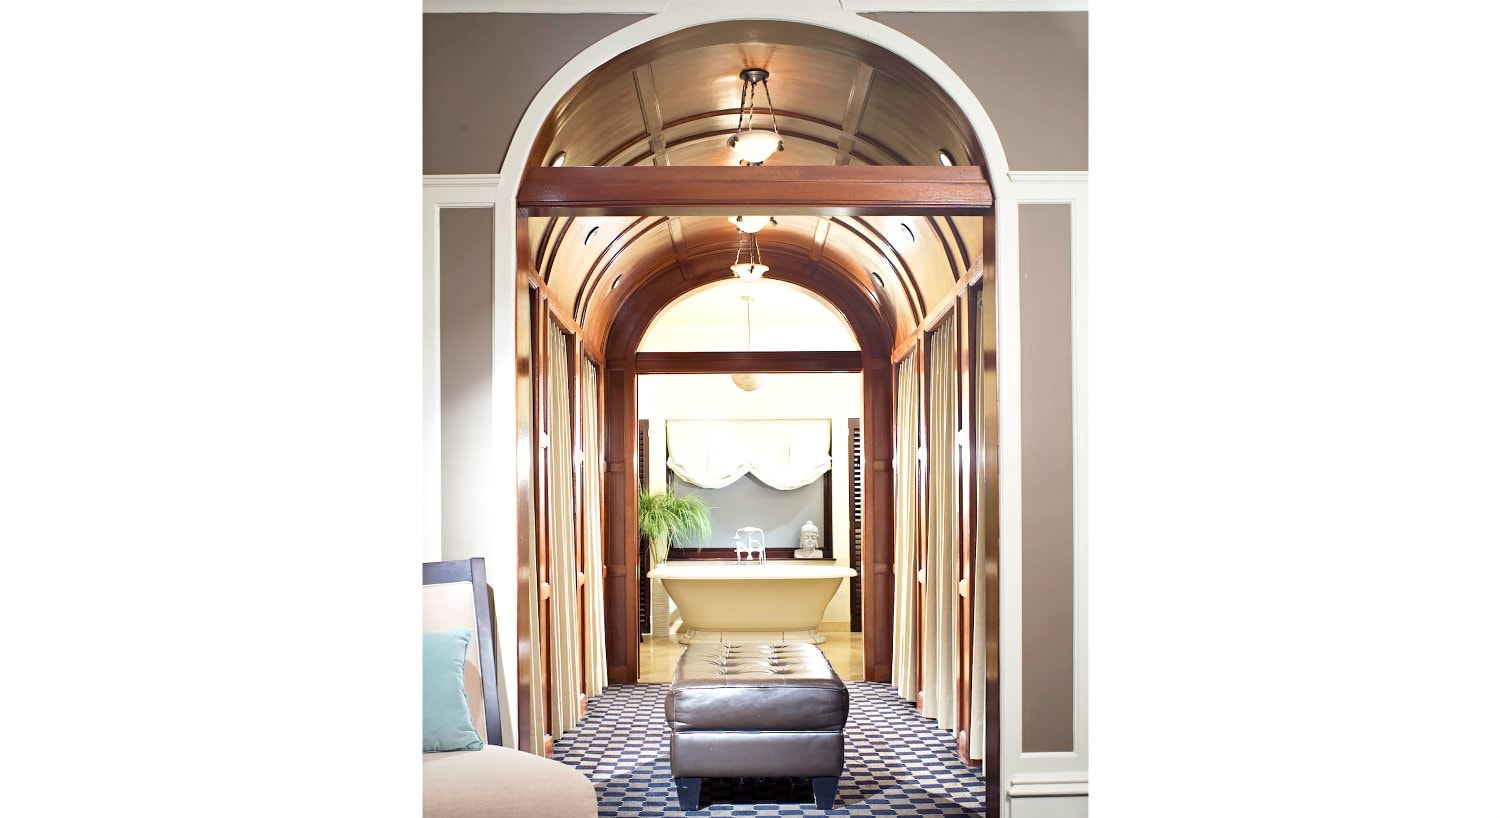 View of white modern freestanding tub through a stained wood hallway with barrel vault ceiling